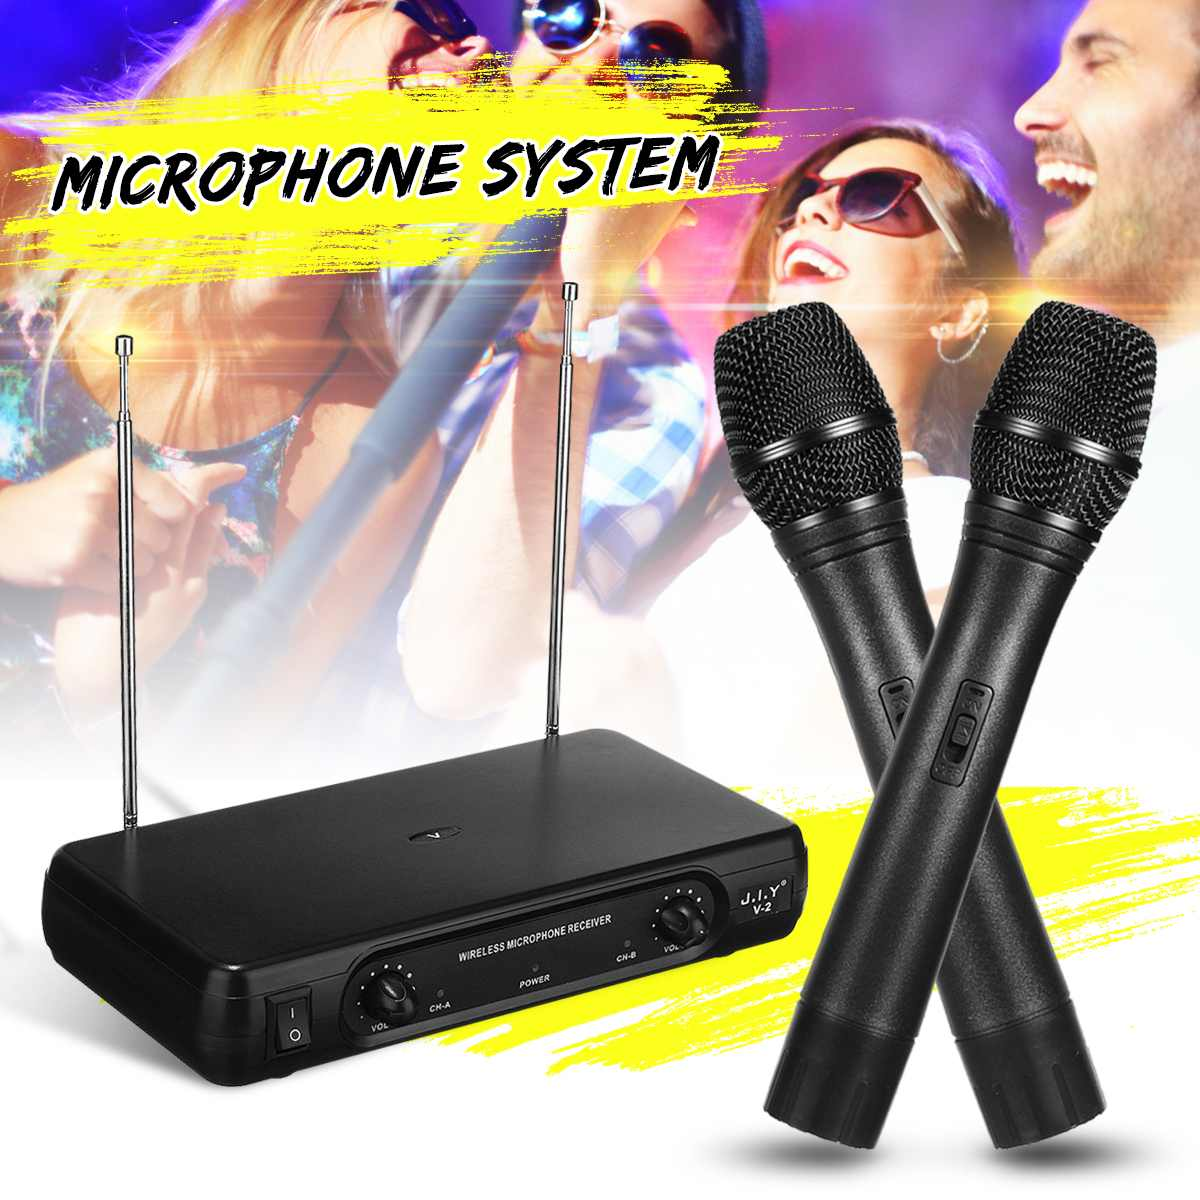 Dual Professional VHF Wireless Microphone System Cordless Handheld Mic Receiver Microphones Karaoke with 2 MicrophonesDual Professional VHF Wireless Microphone System Cordless Handheld Mic Receiver Microphones Karaoke with 2 Microphones